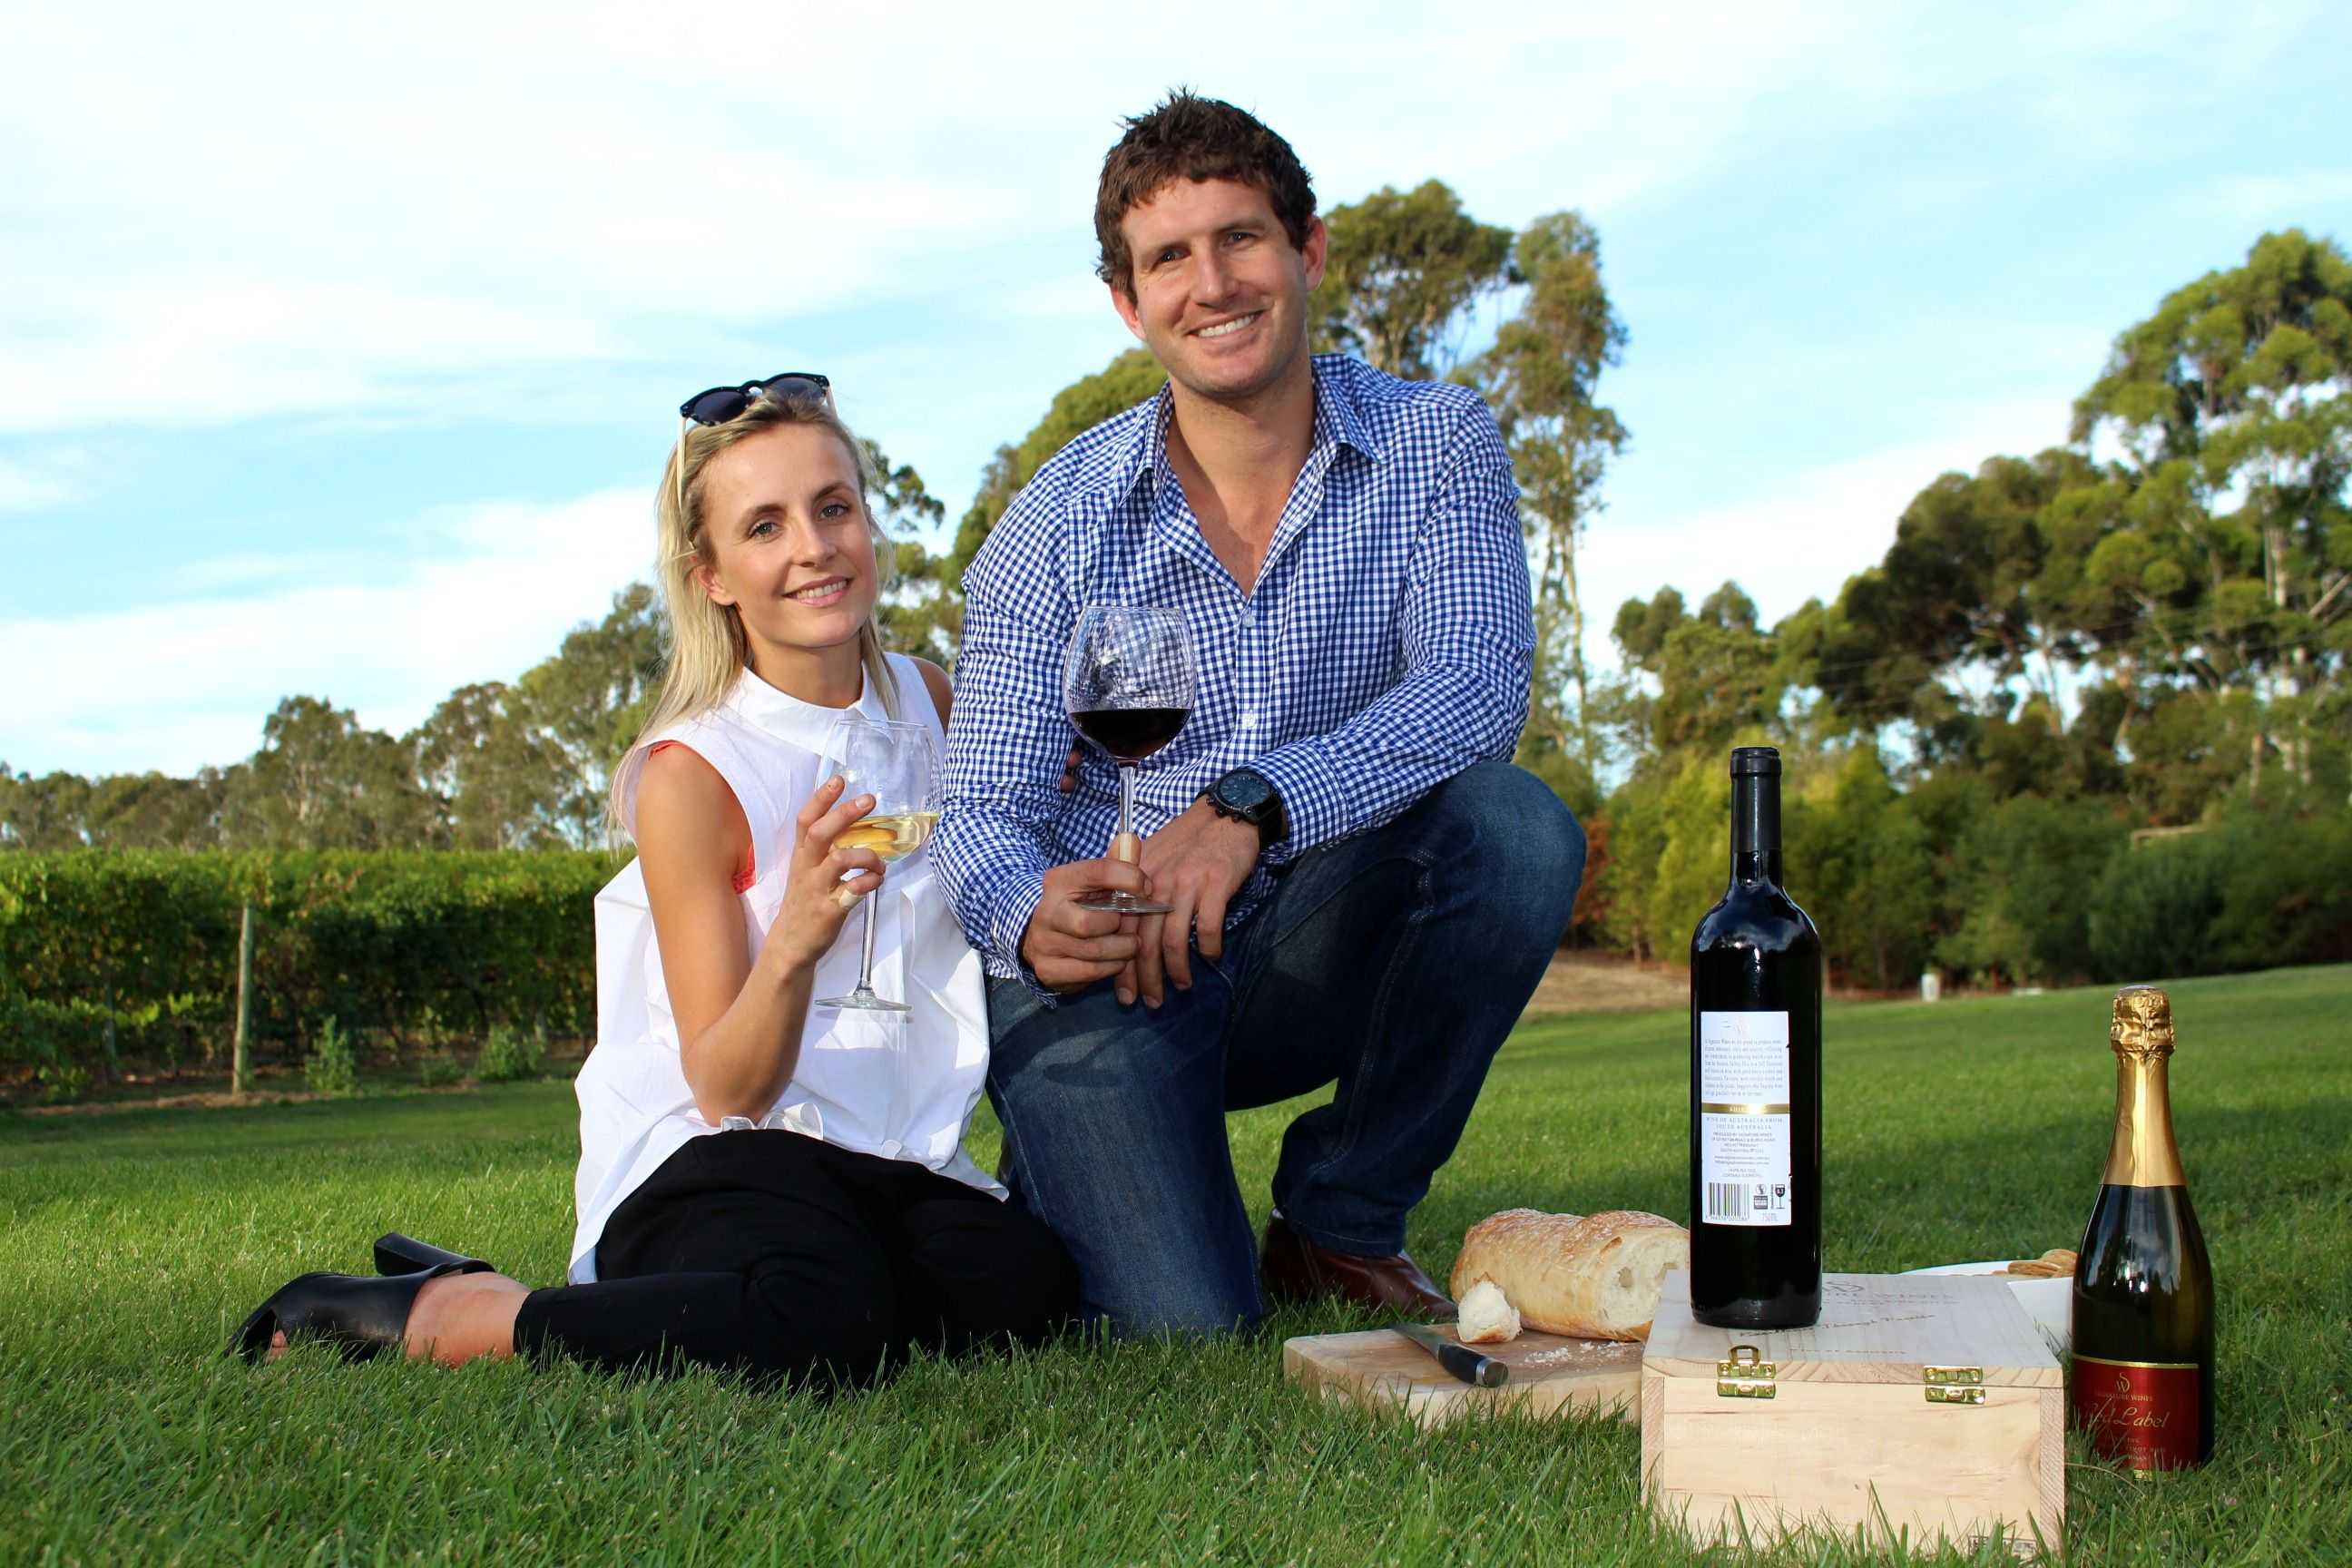 Join us for a private Cadillac wine tour through the Adelaide Hills and Barossa Valley #wine #taste #love